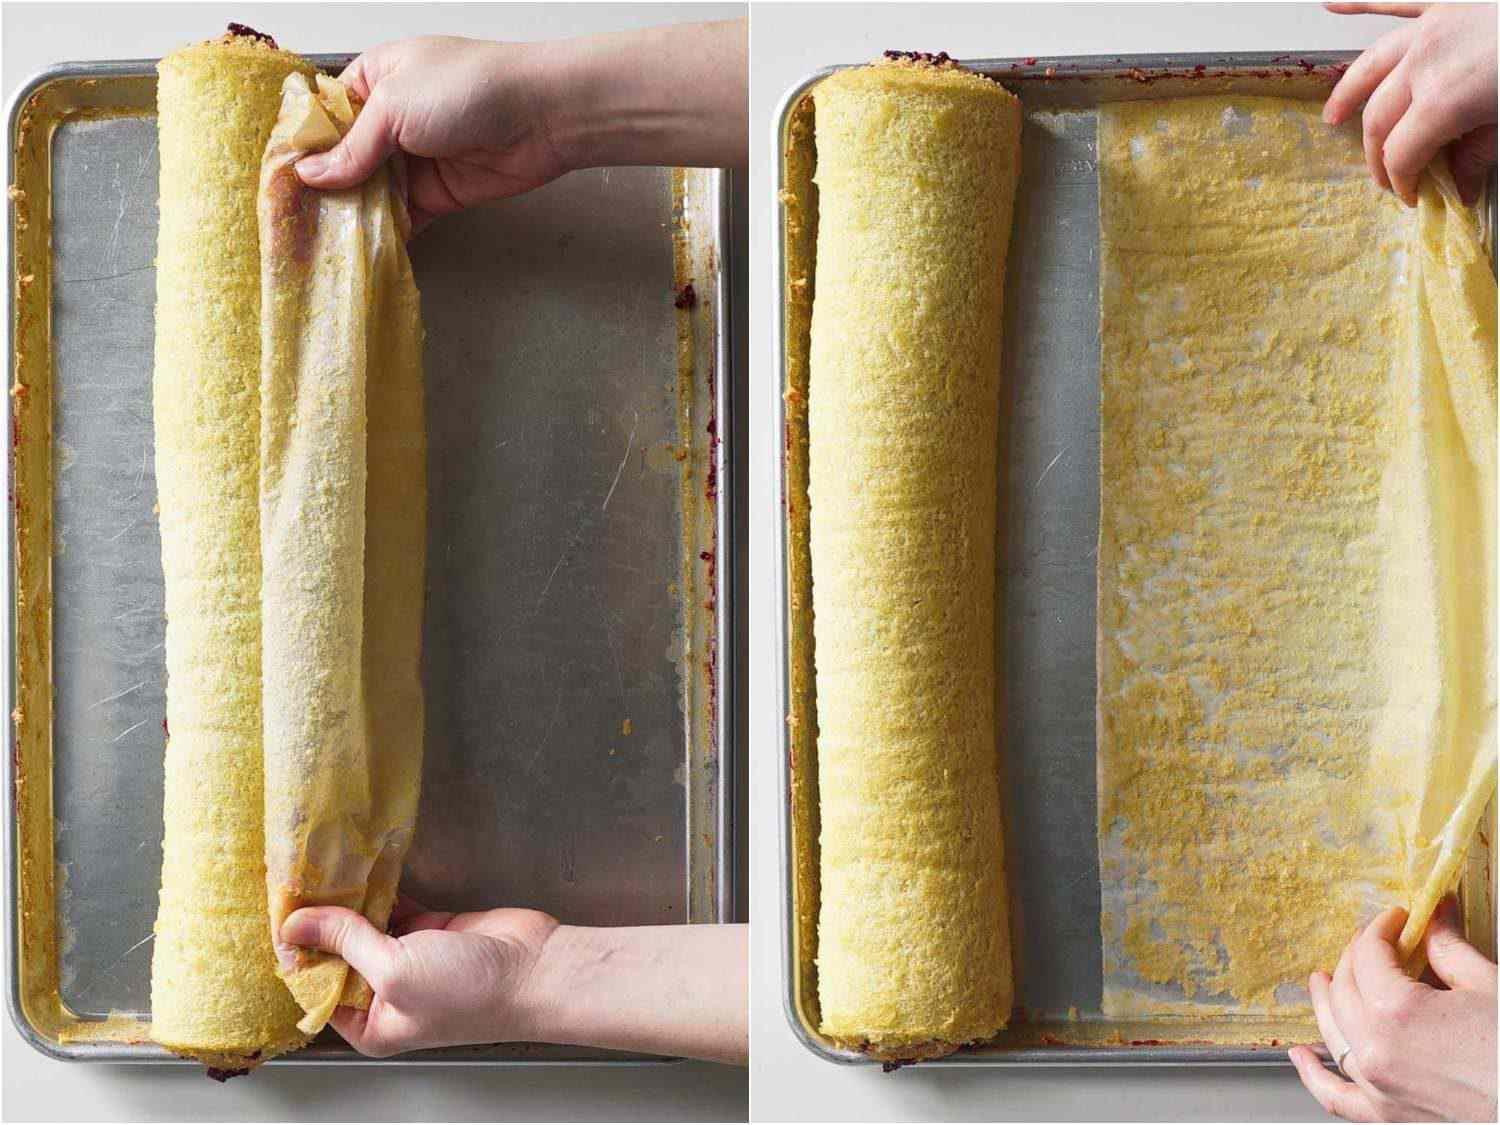 Removing the jelly roll from the parchment by pulling it out from the bottom